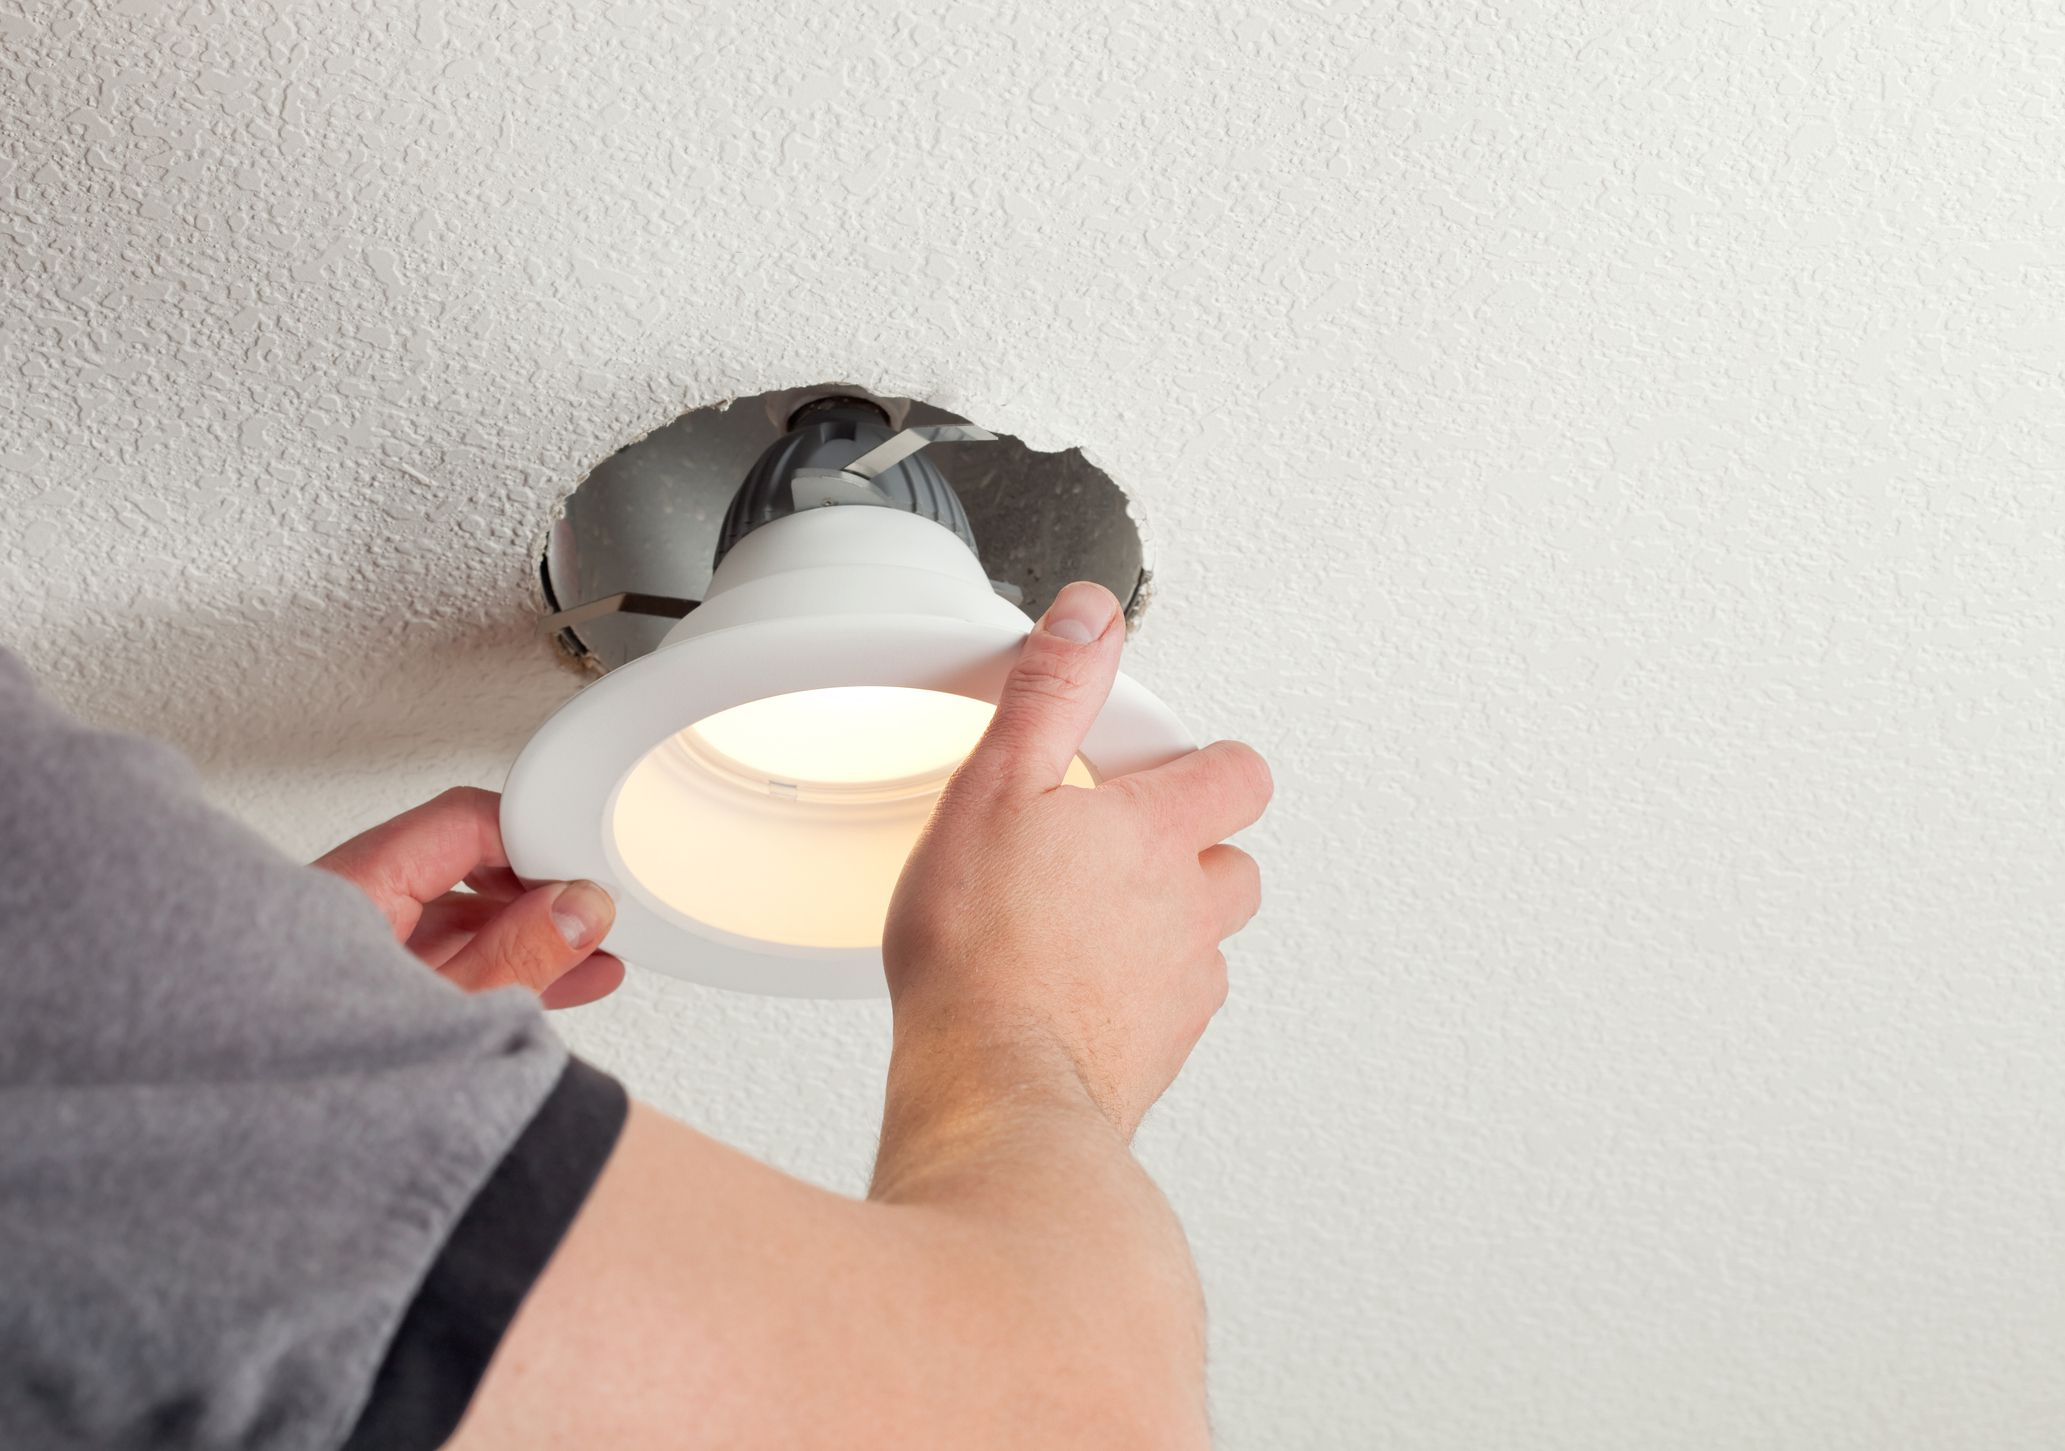 Installing Retrofit Recessed Lighting